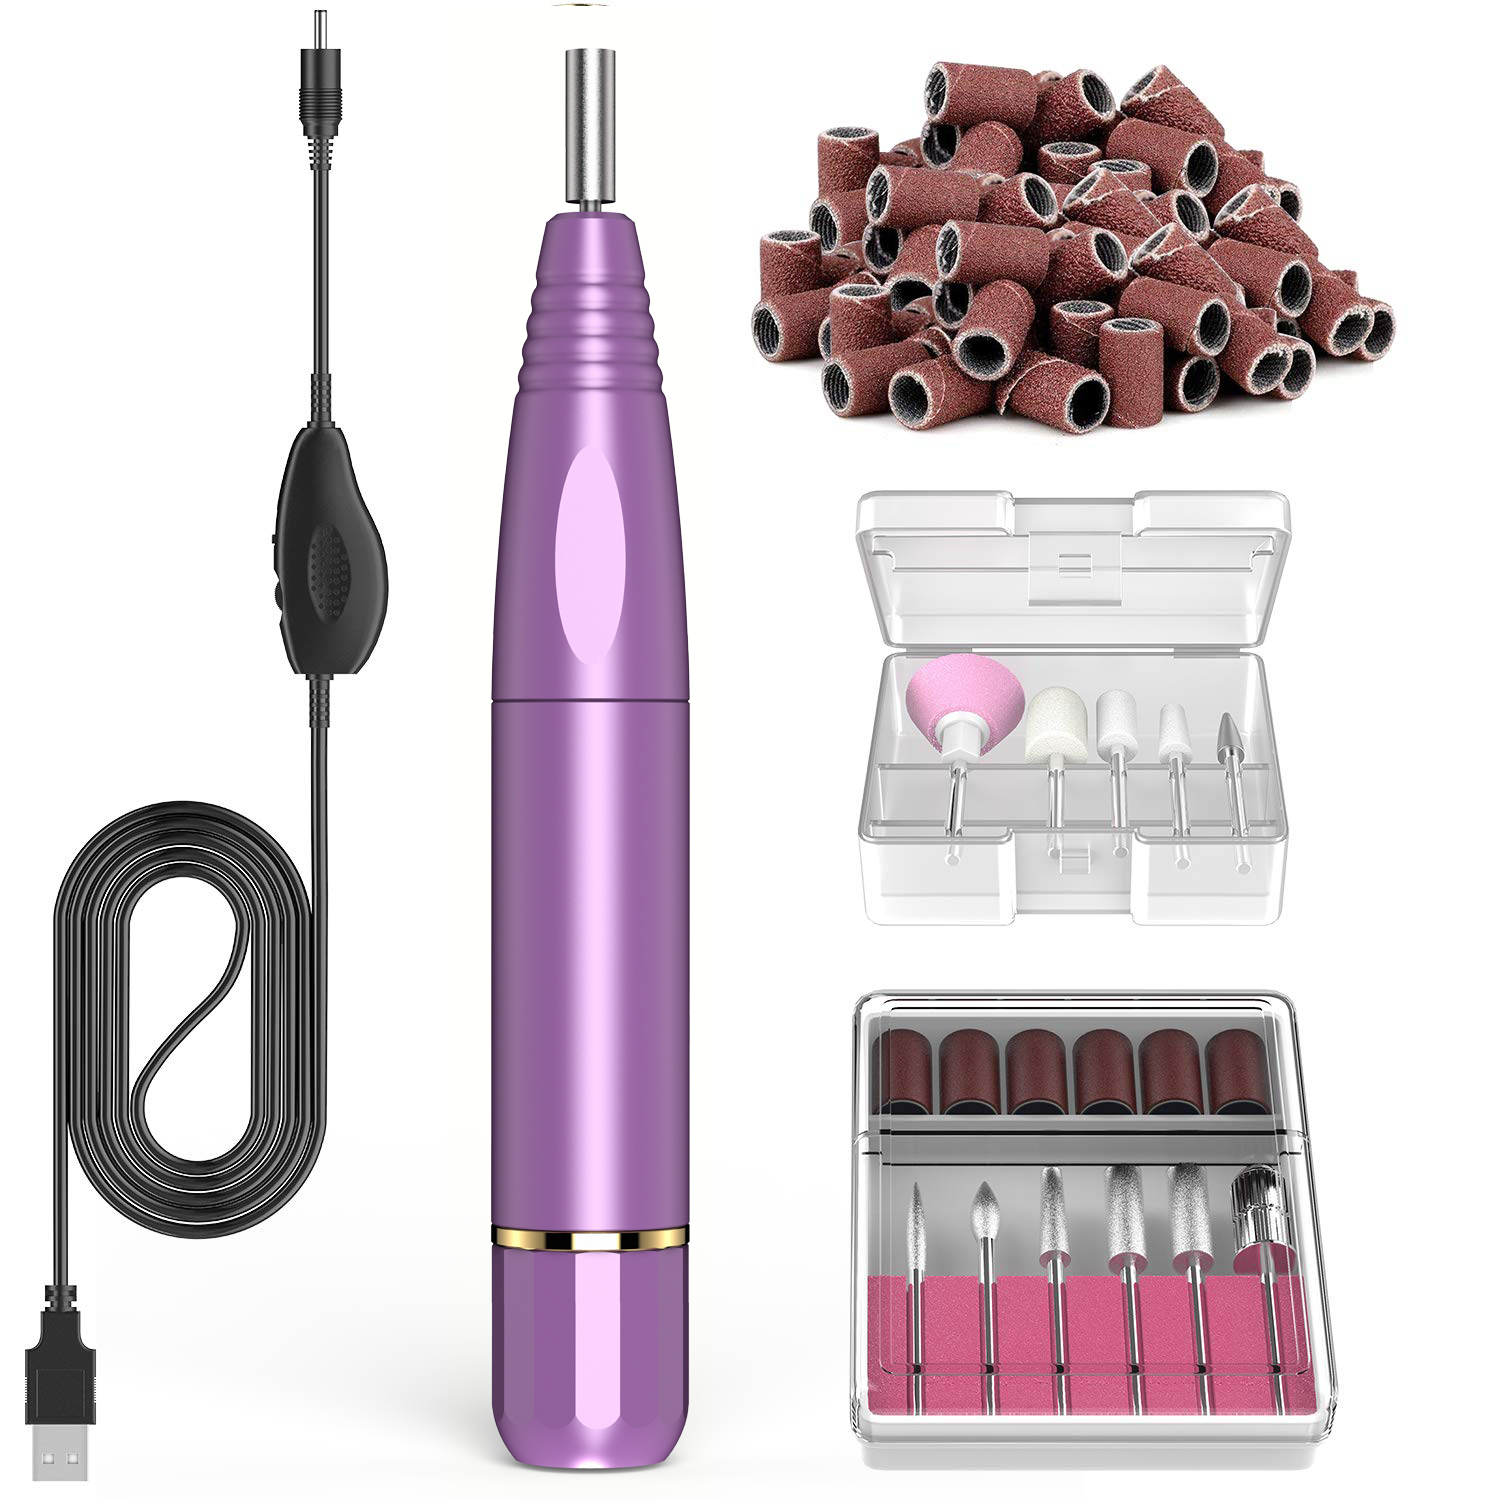 Electric nail drill manicure pedicure set